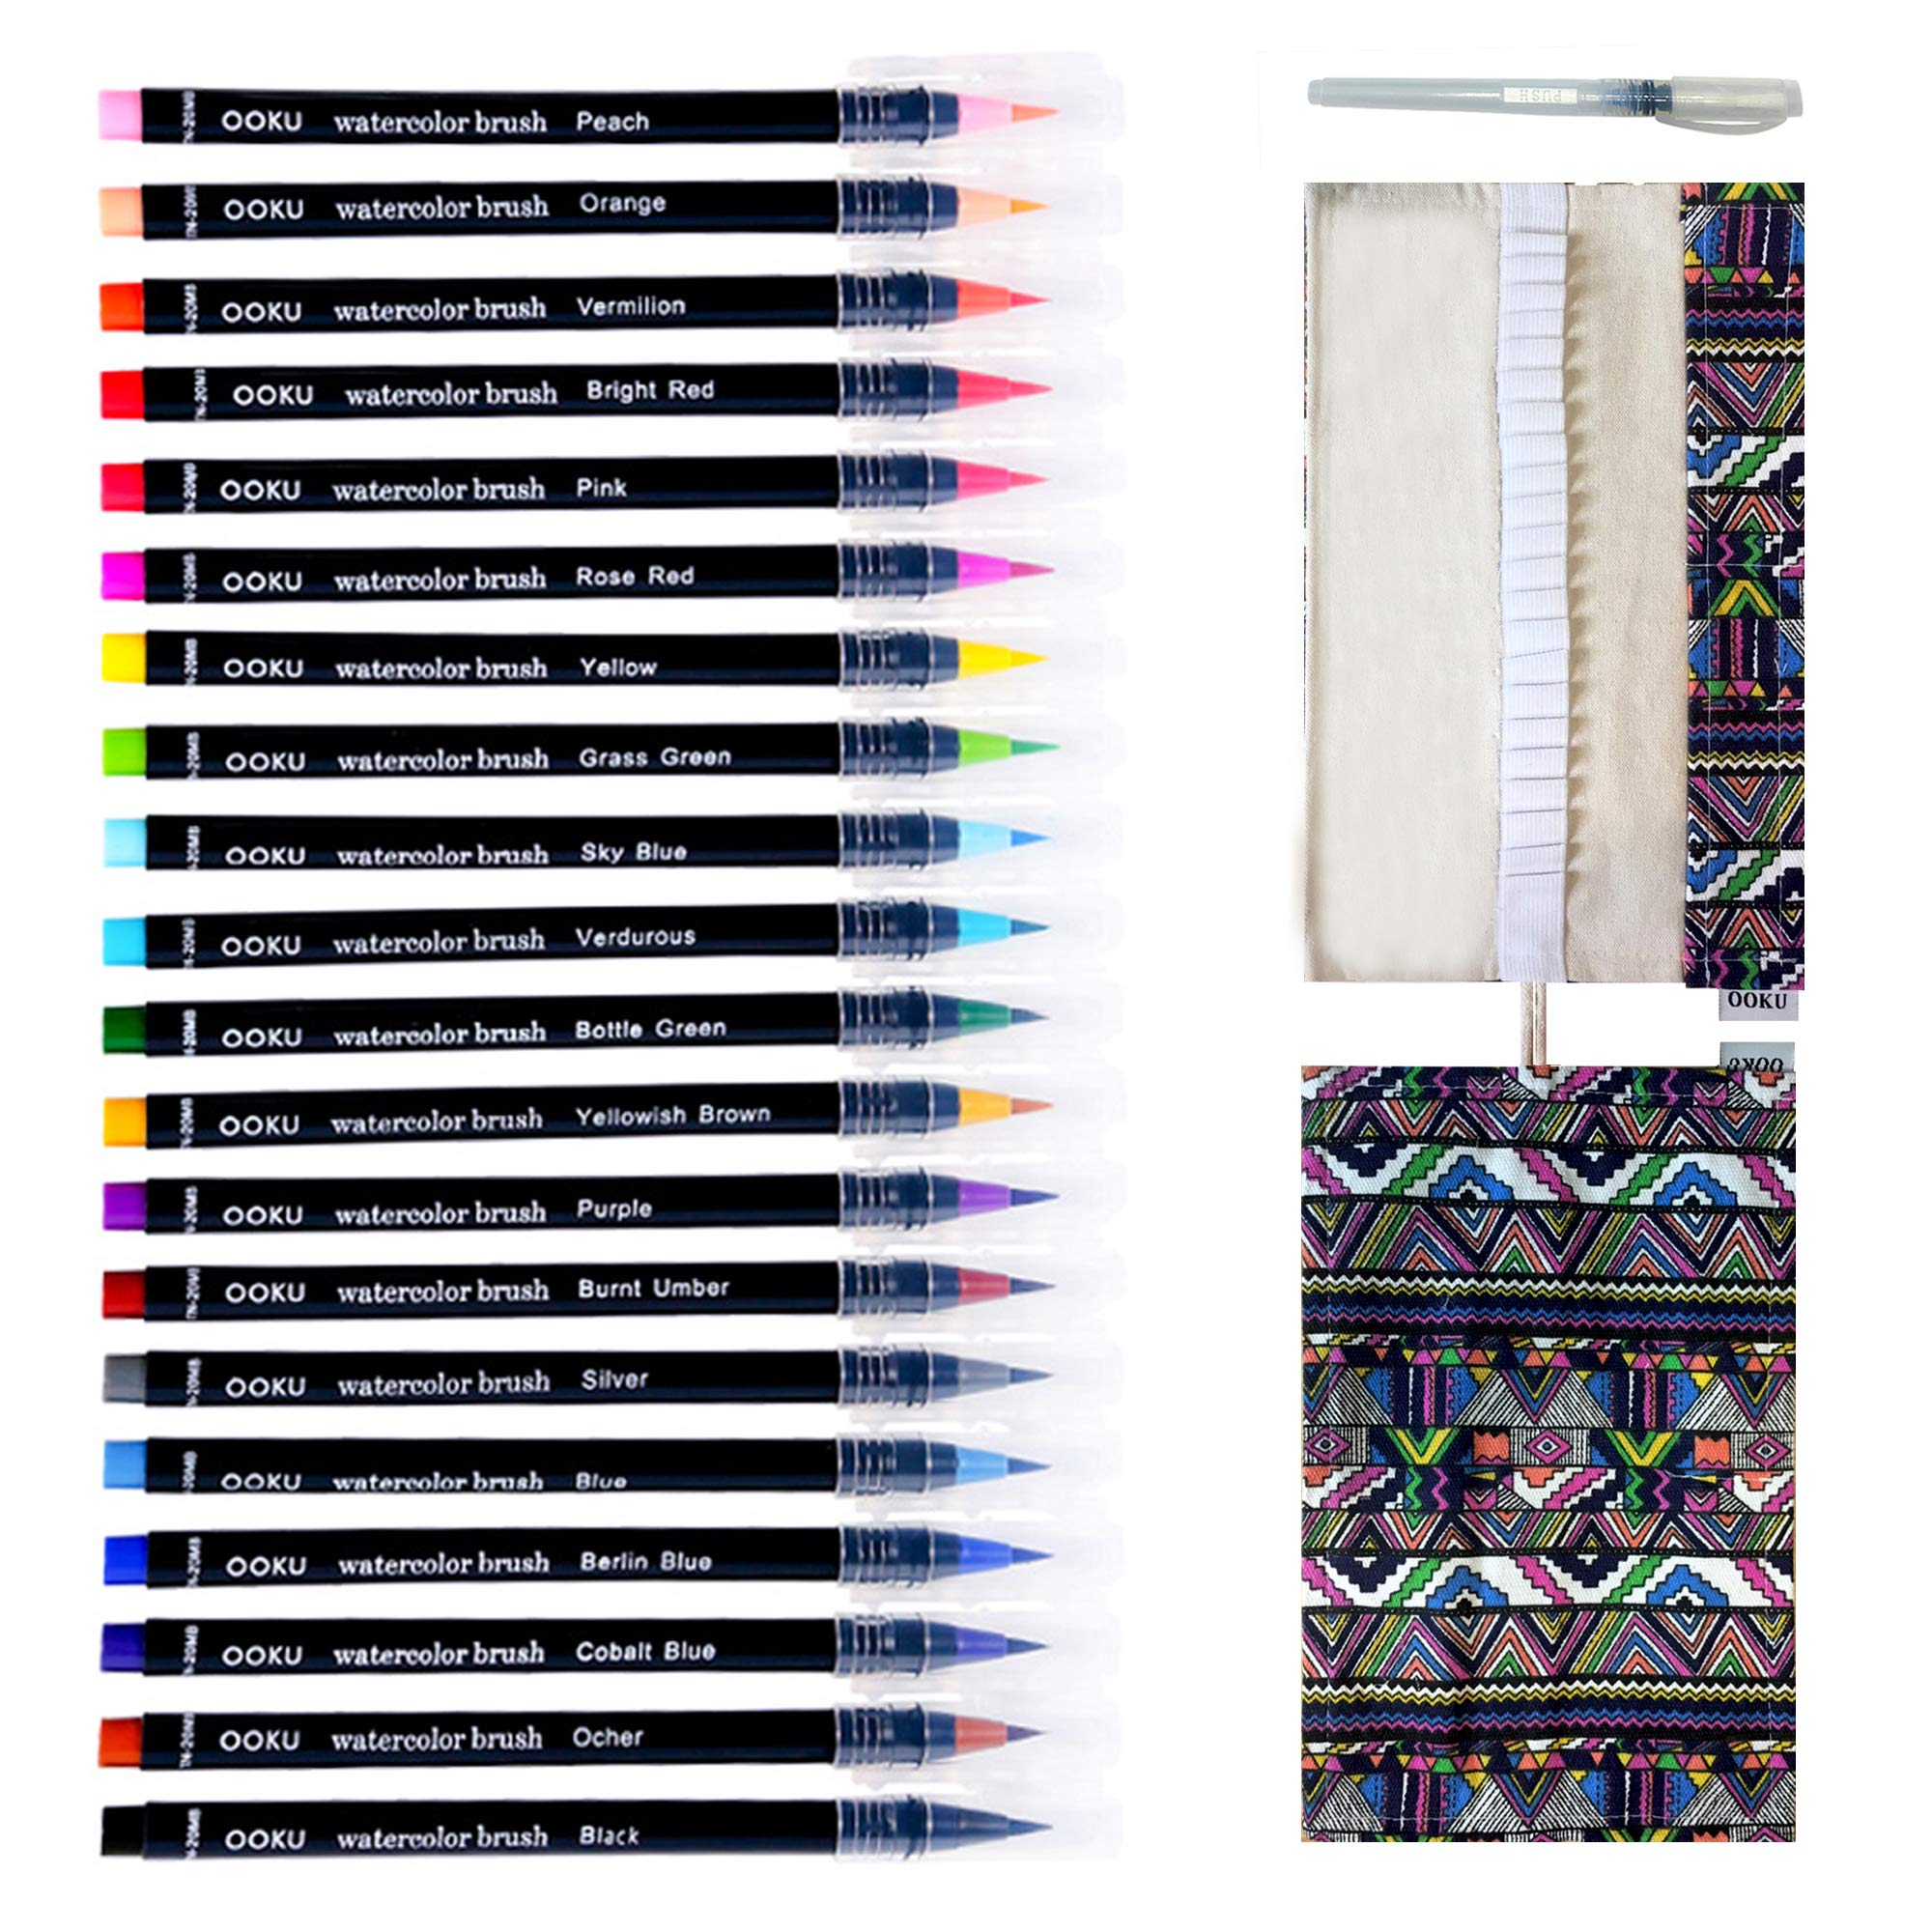 Watercolor Brush Pens - 20 Pre-Filled Water Color Brush Markers with Real Brush Tips for Water Coloring - Bonus Cloth Canvas Wrap and Water Brush Pen - Odor & Oil Free - 22 Piece Set by OOKU